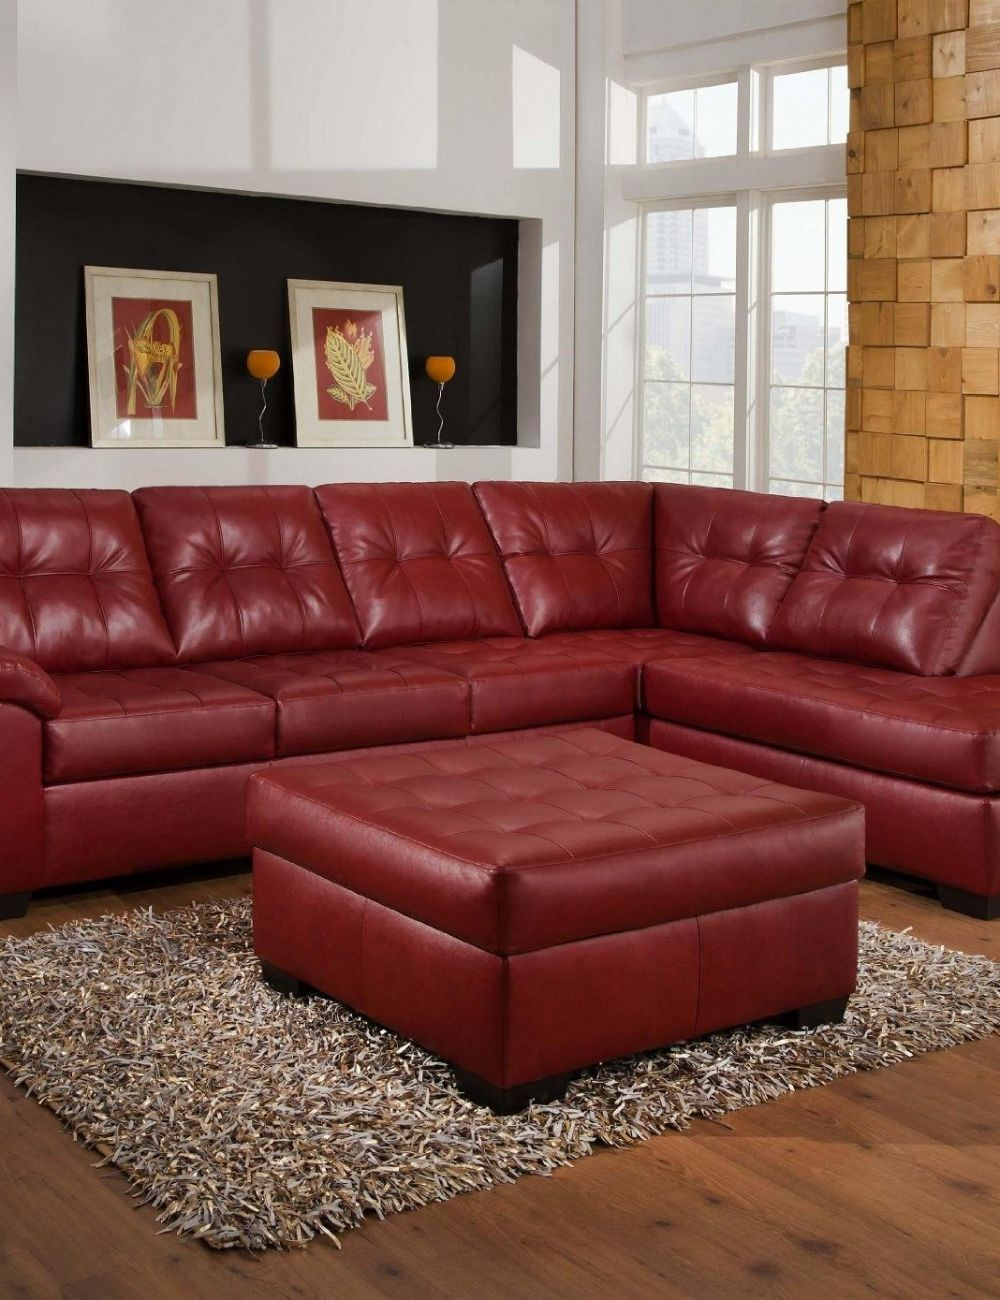 Red Leather Sectional Sofa With Ottoman Red Sectional Sofa Red